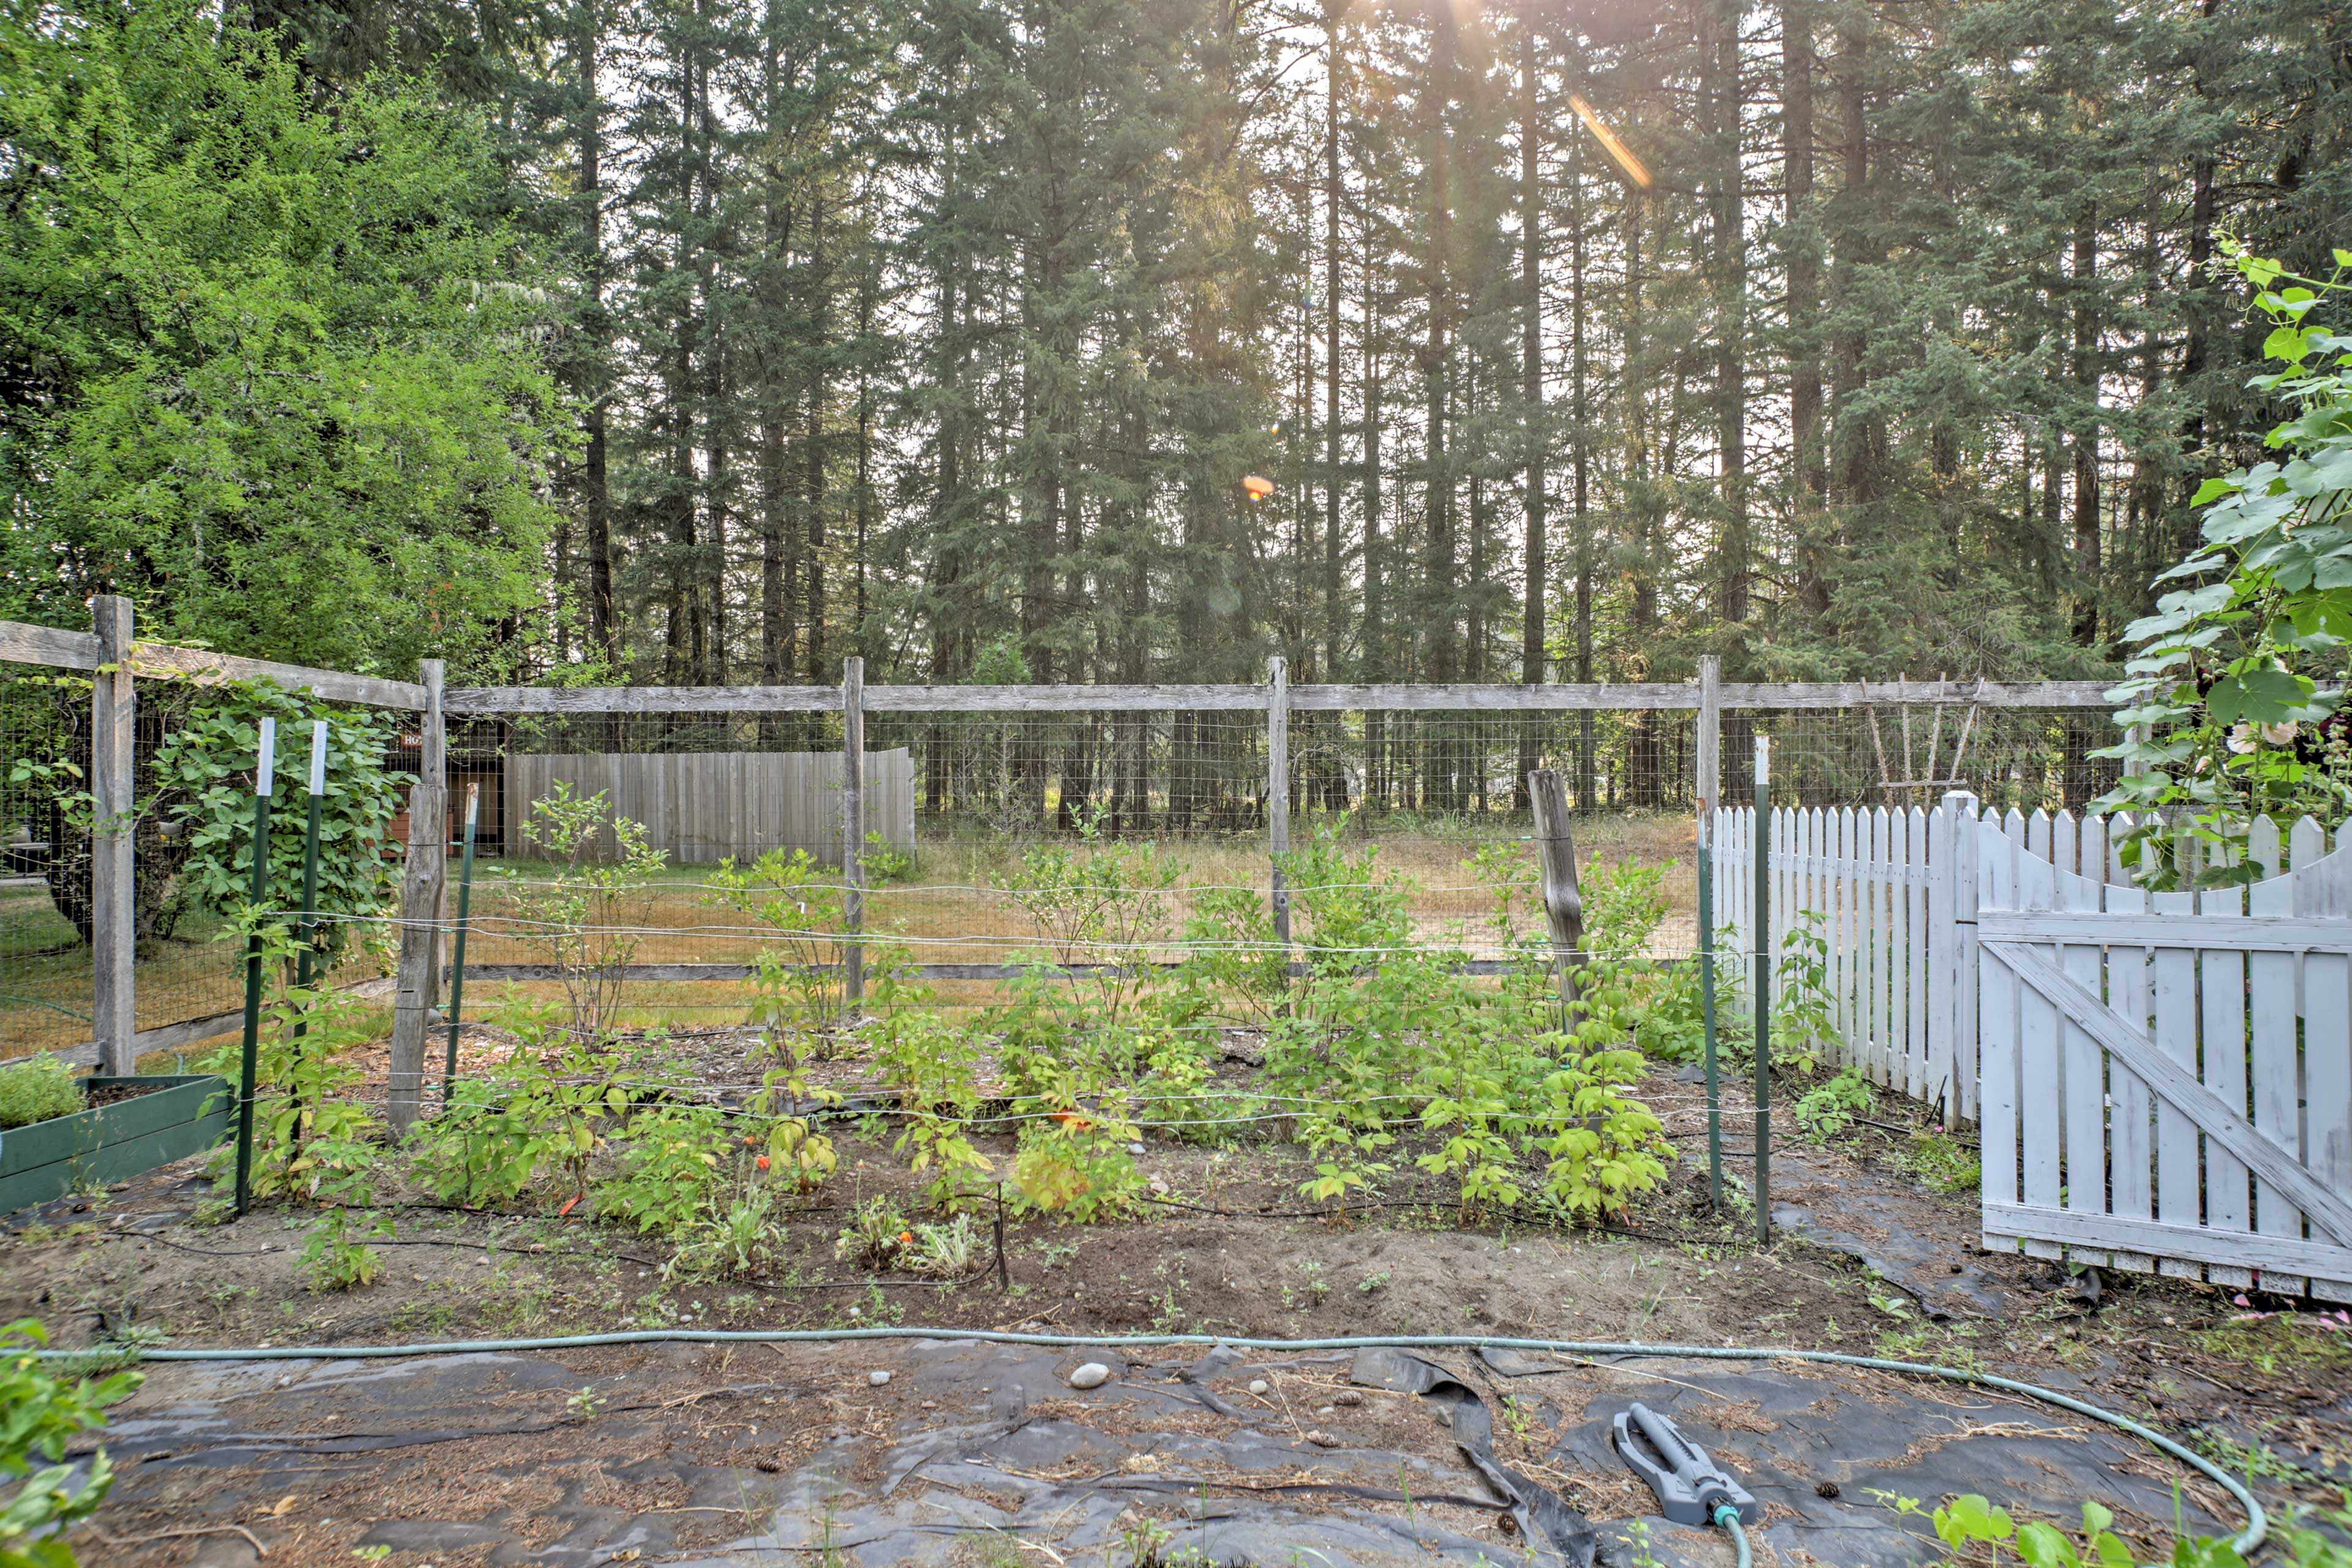 There is even a garden on the property.